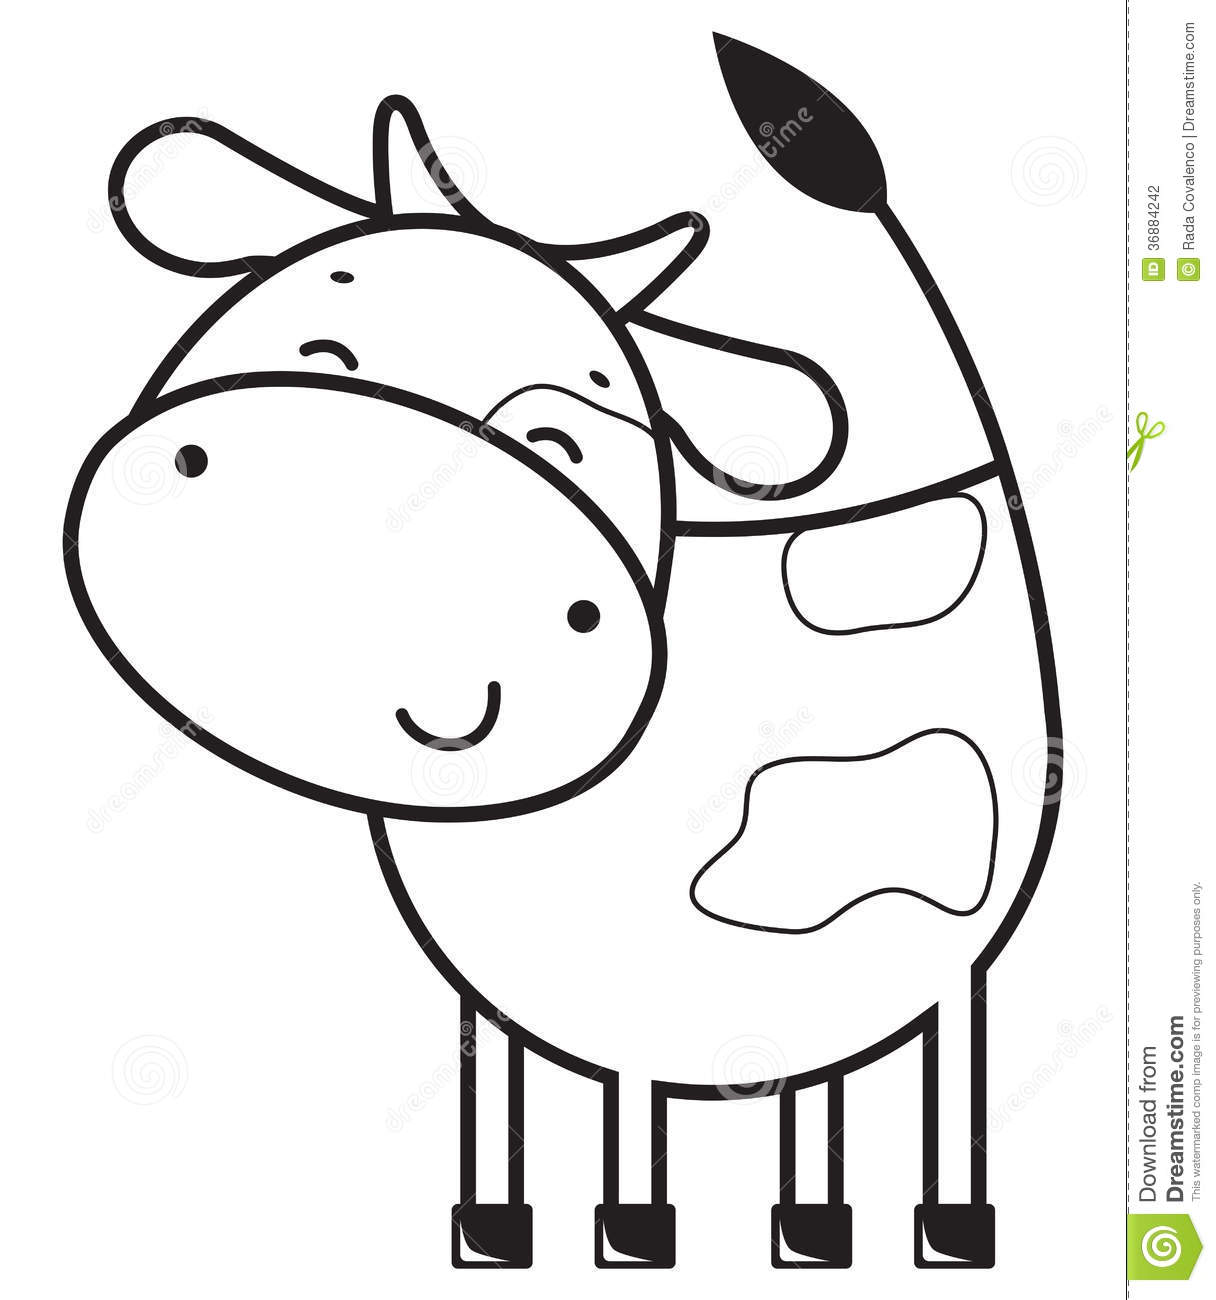 Funny Outline Cow Stock Vector Illustration Of Farm